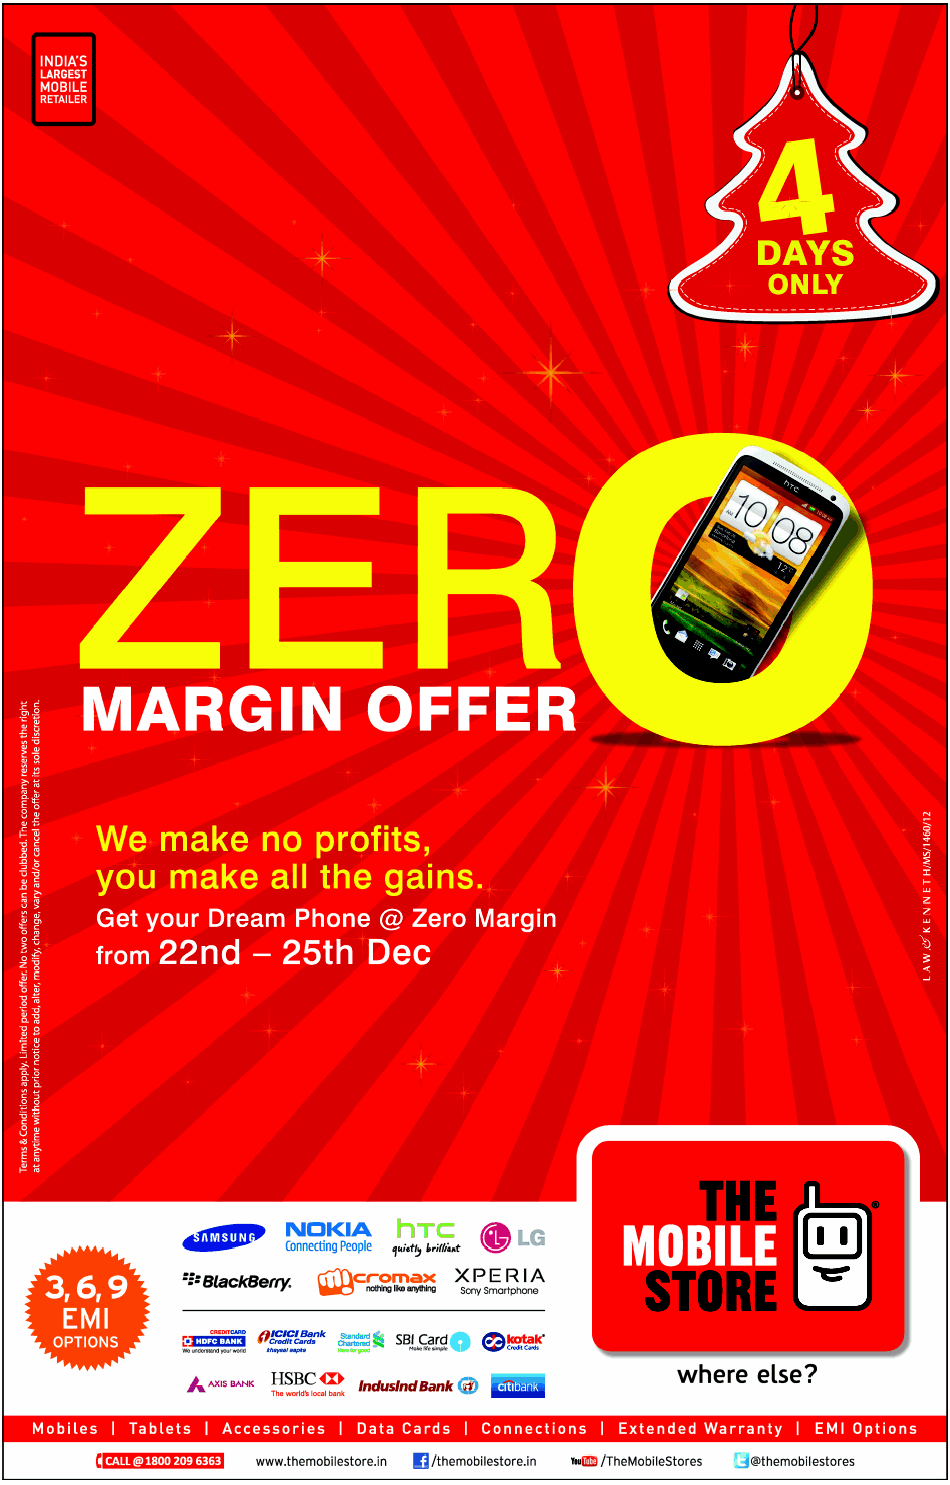 The Mobile Store - Zero Margin Offer